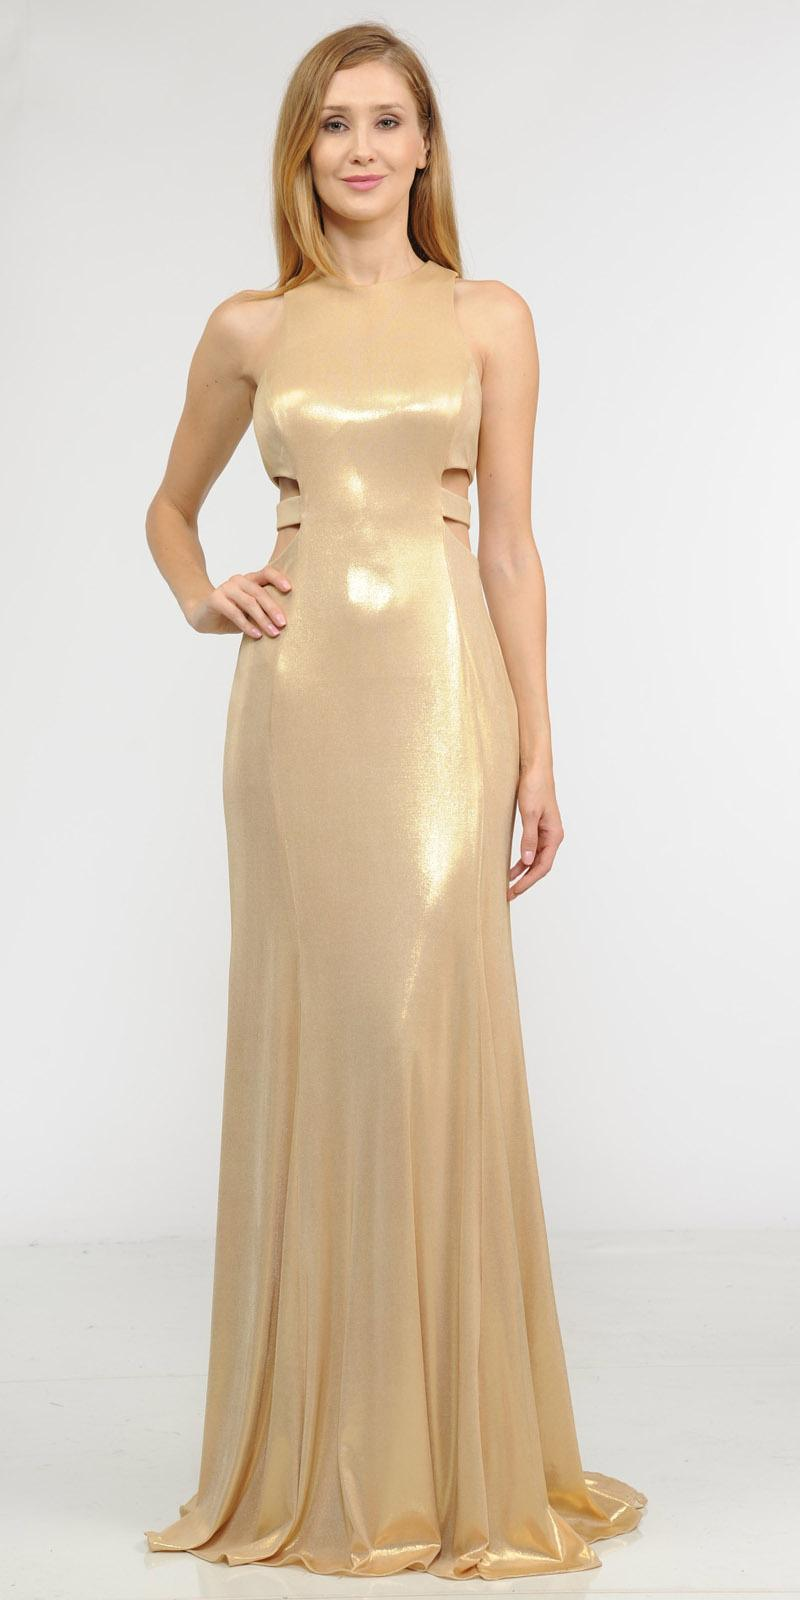 Poly USA 8270 Gold Metallic Foil Sleeveless Long Formal Dress with ...